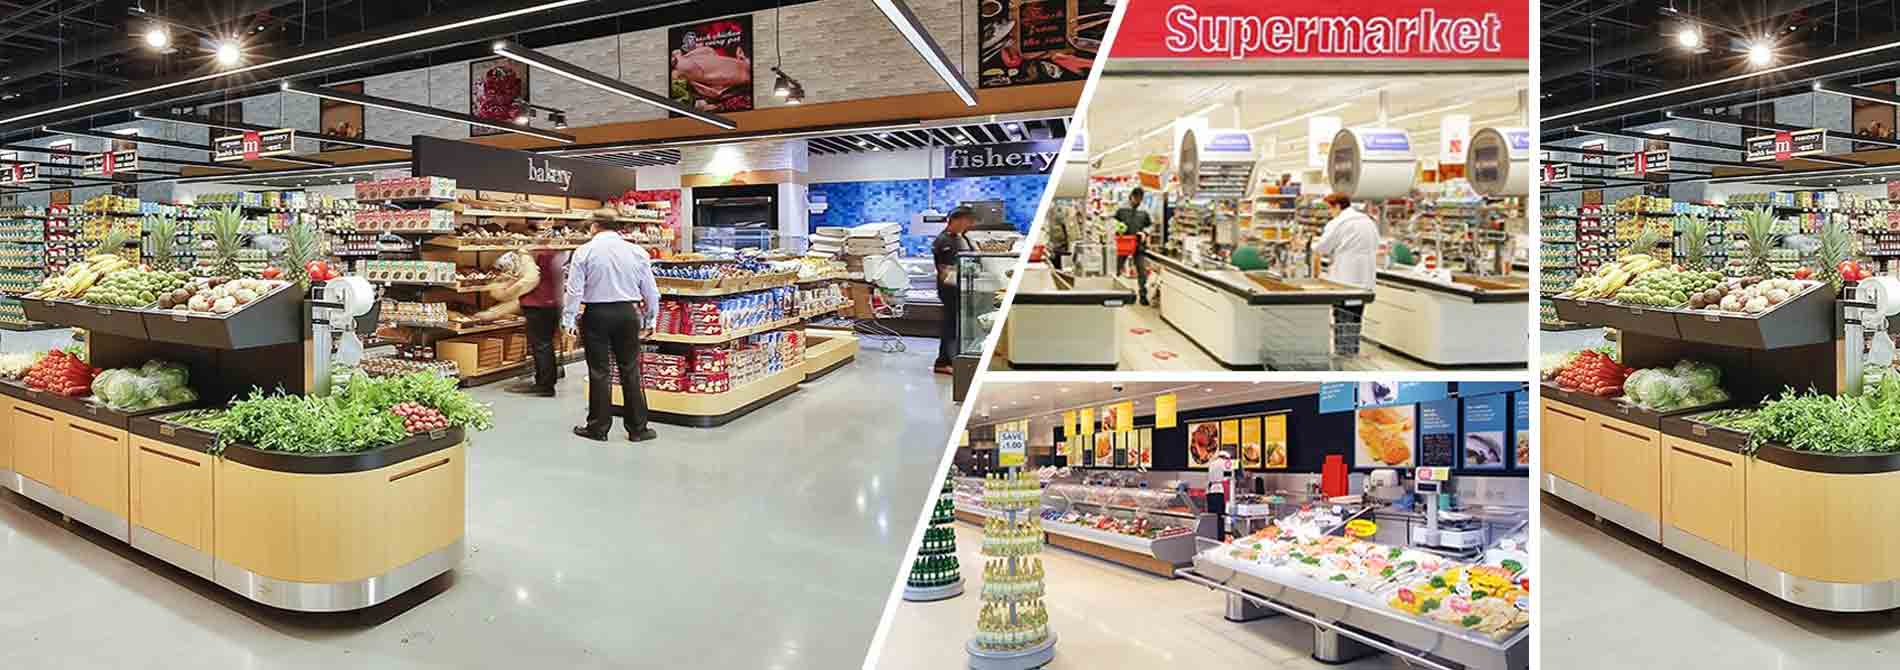 Supermarket Equipment & Refrigeration Supplier in Dubai UAE